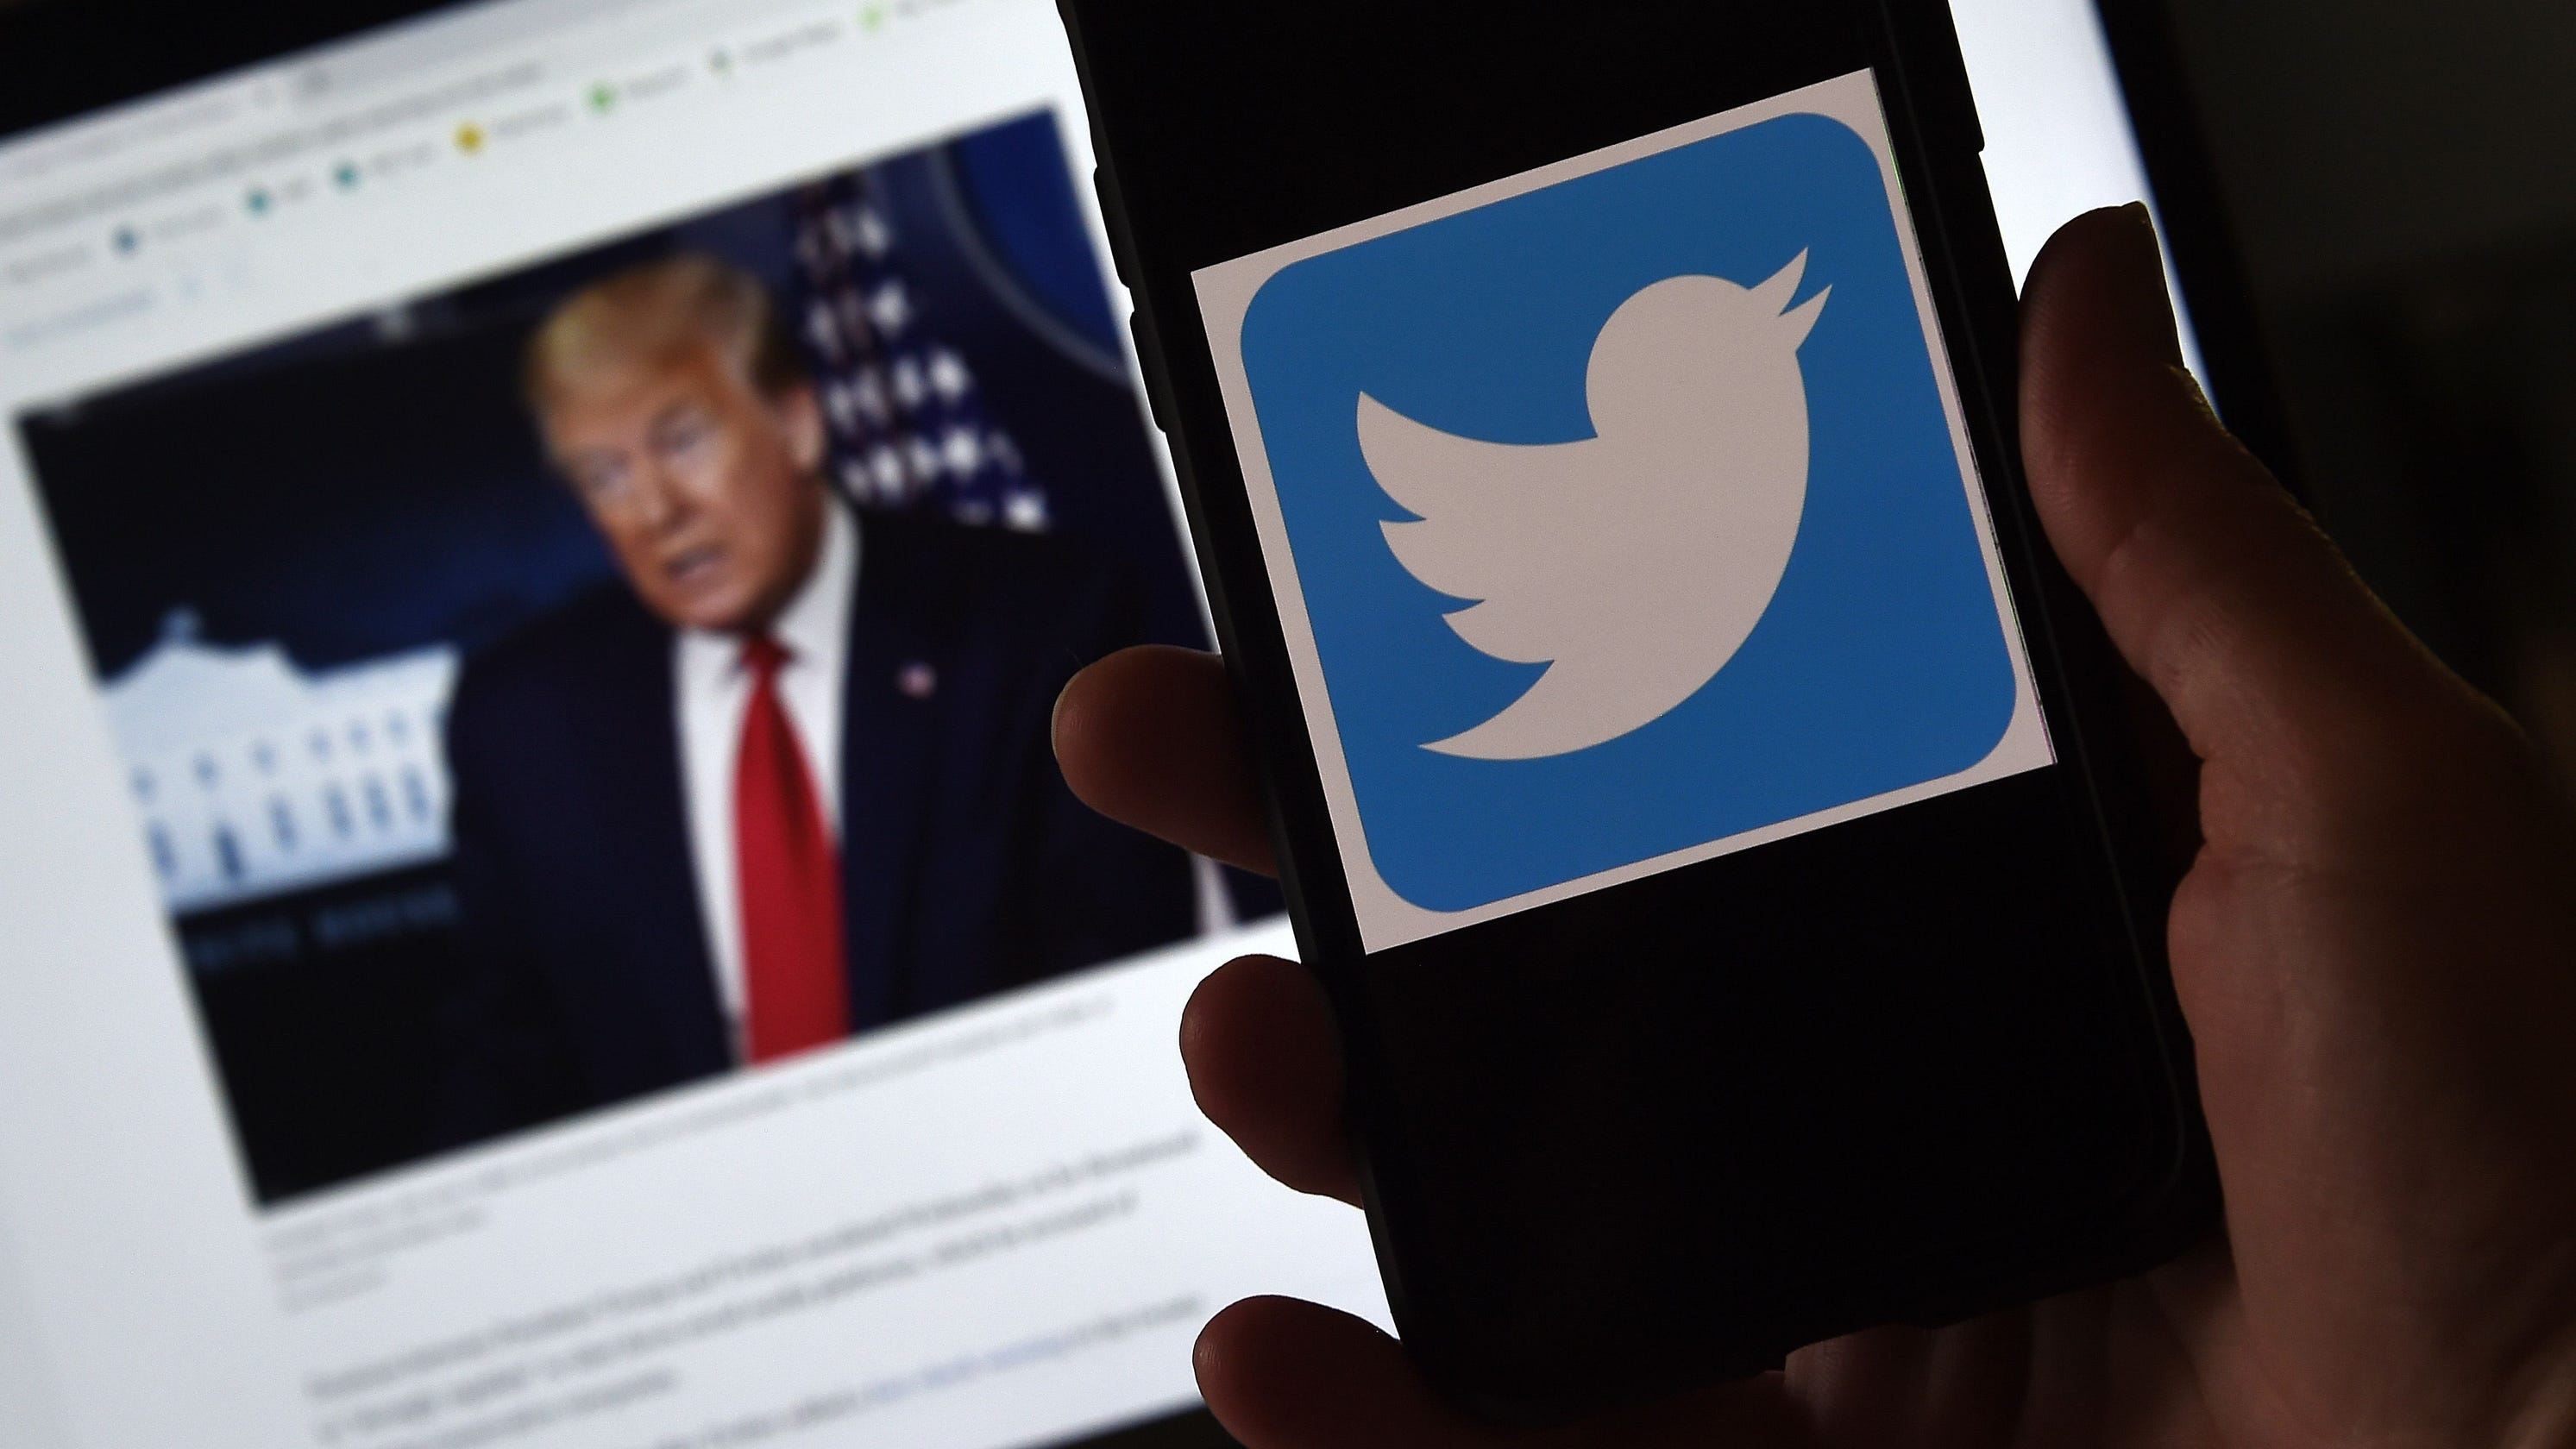 Twitter aims to rock the vote with big voter registration push Tuesday